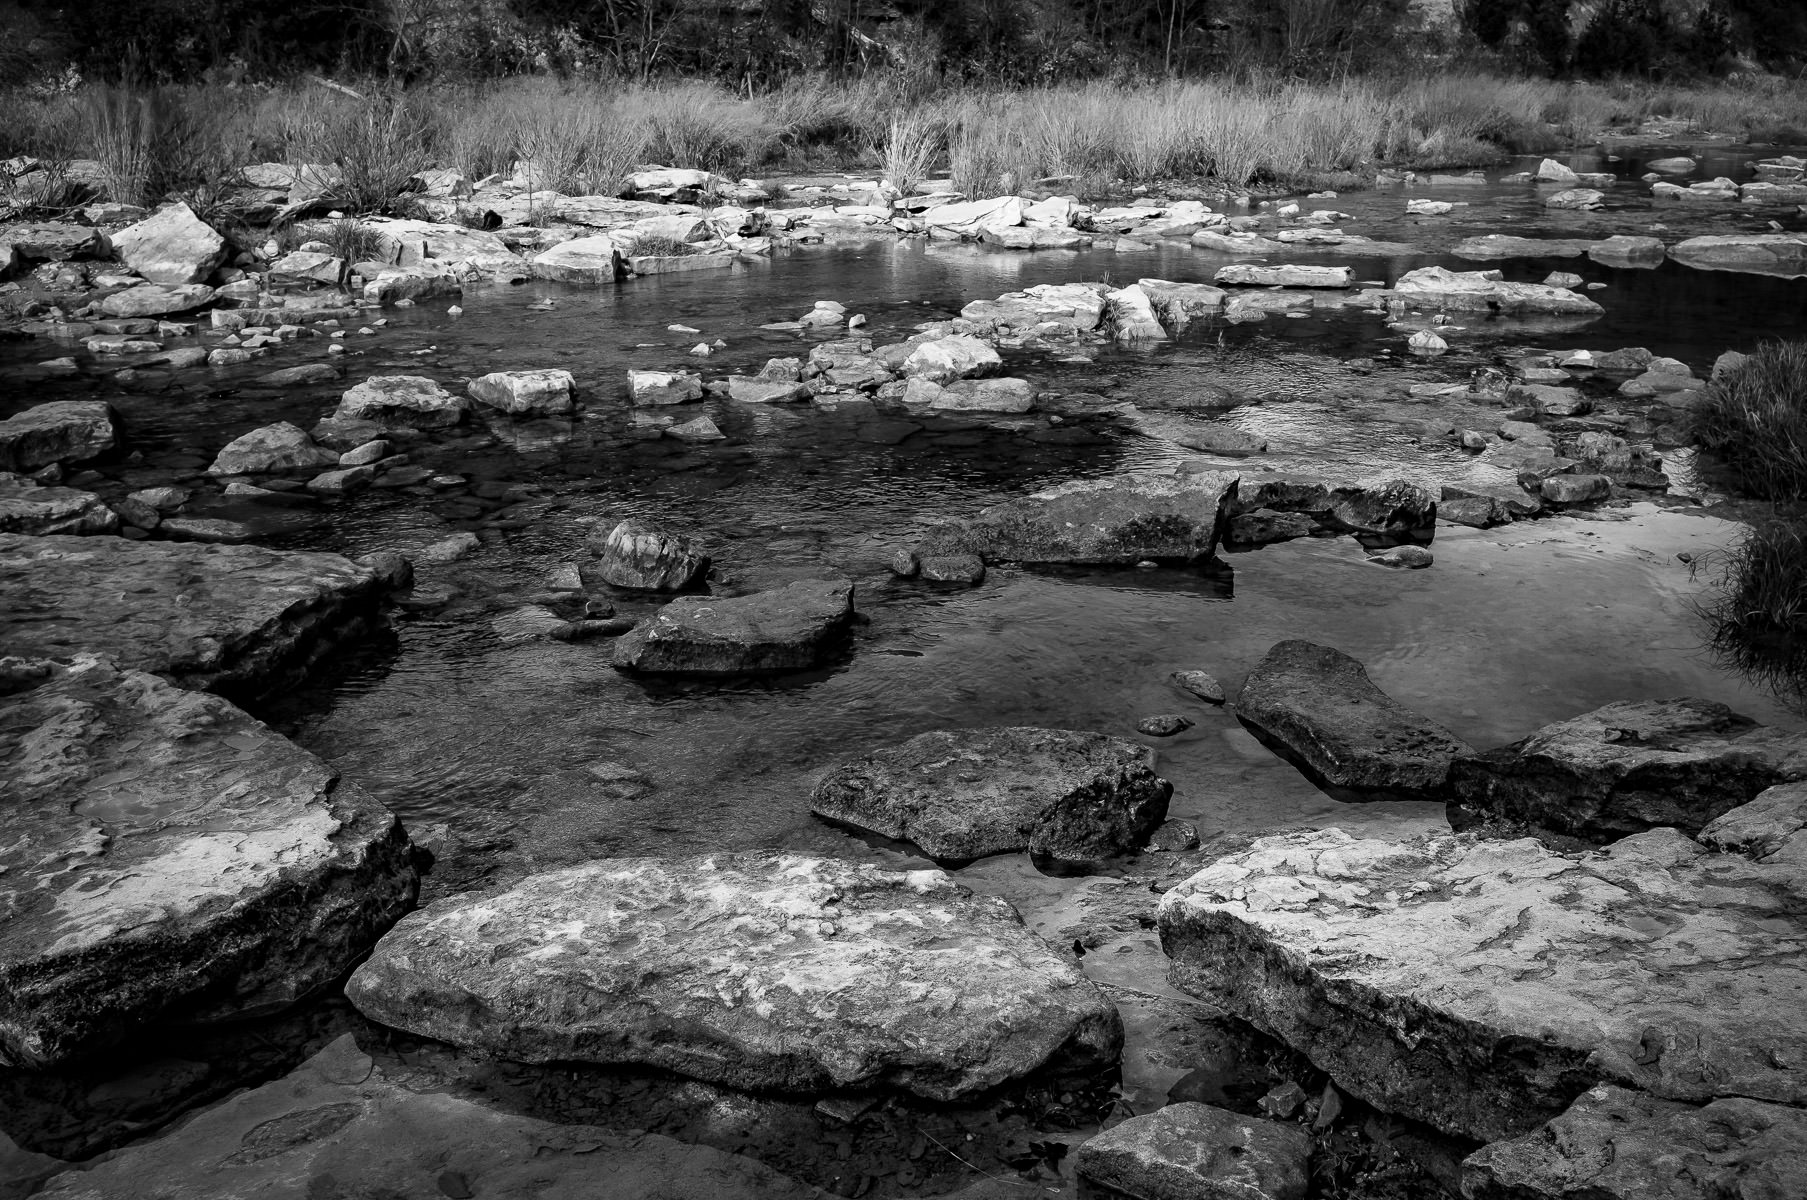 The rocky riverbed of the Paluxy River in Texas' Dinosaur Valley State Park.